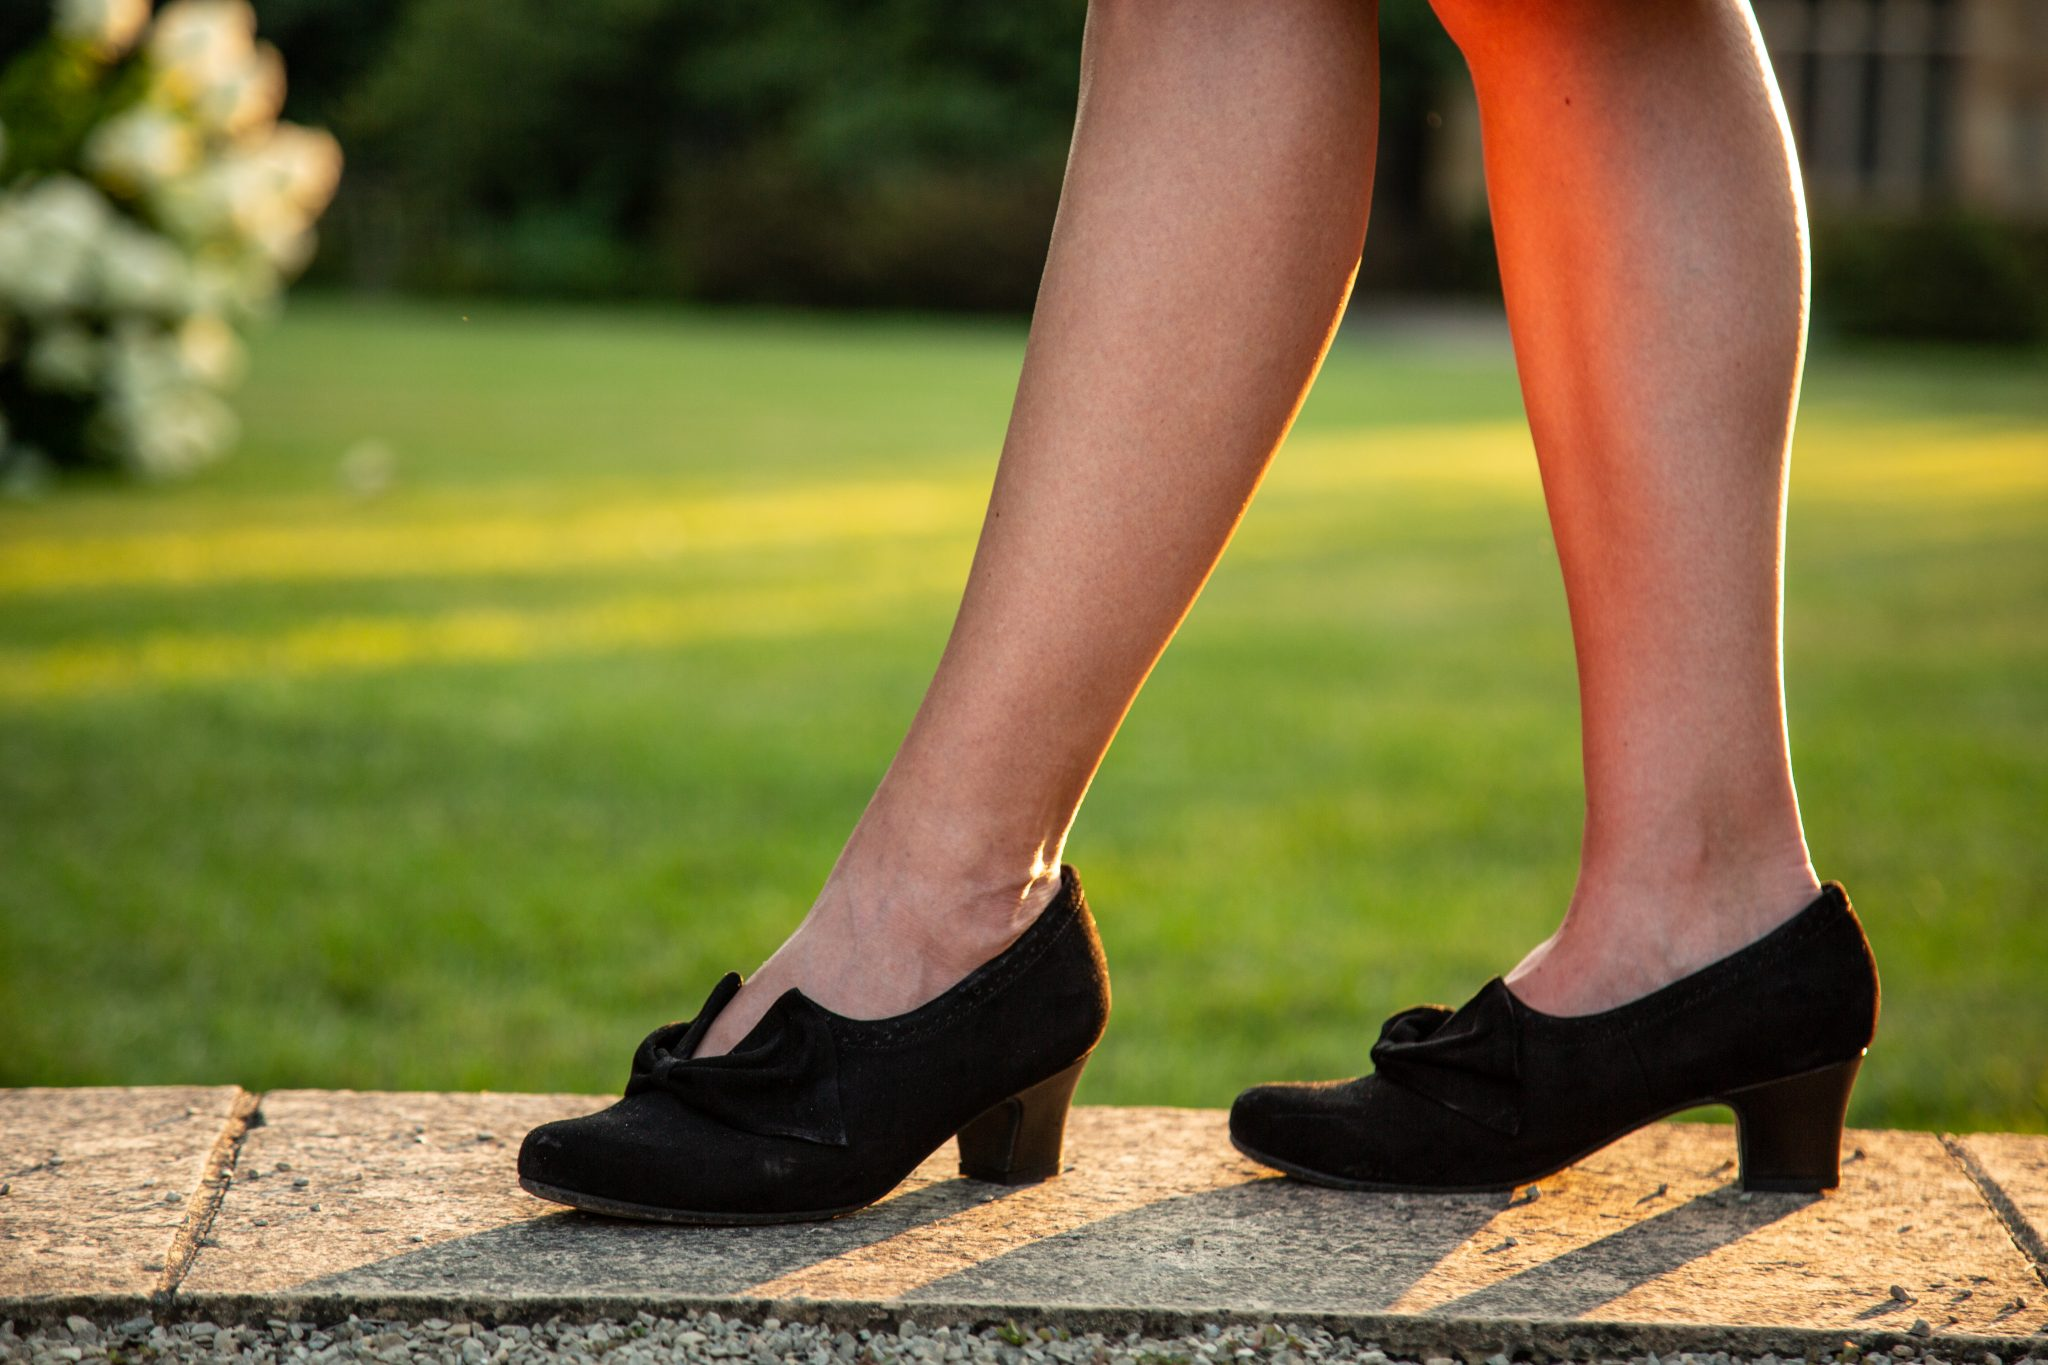 Honest Review of Hotter Shoes for Heels and Sneakers